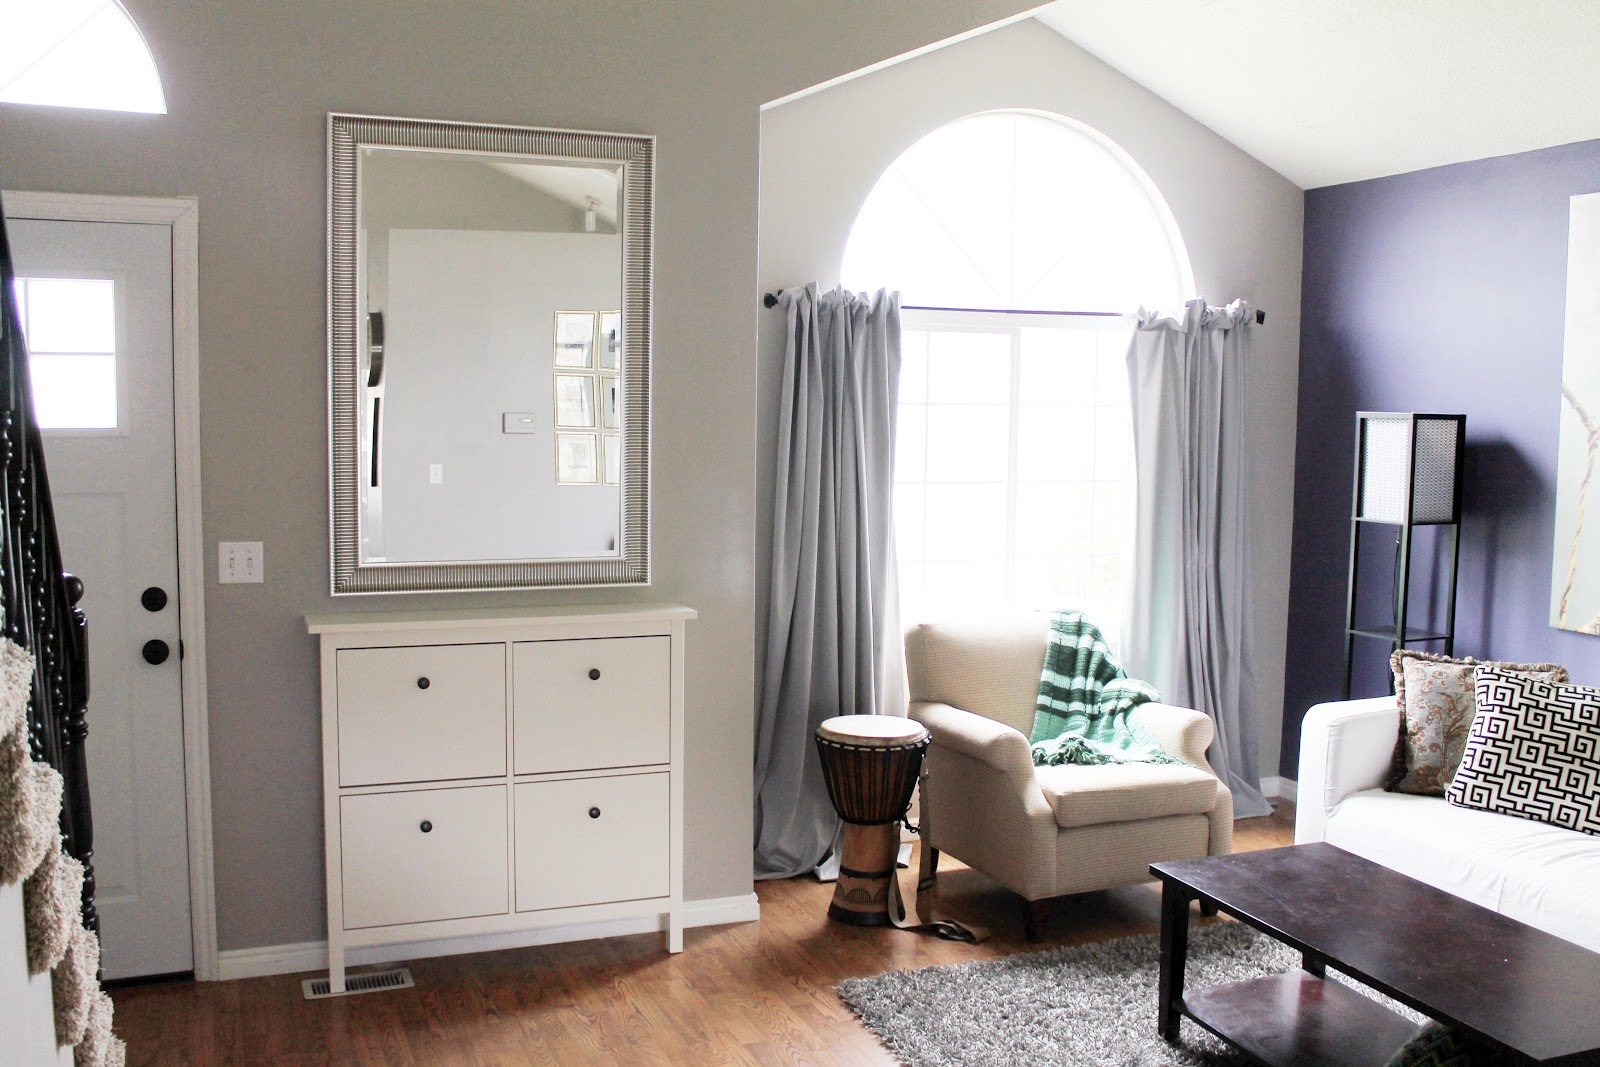 square-white-wooden-shoes-cabinet-for-entry-way-furniture-having-square-four-doors-on-laminate-flooring-under-rectangle-mirror-on-grey-wall